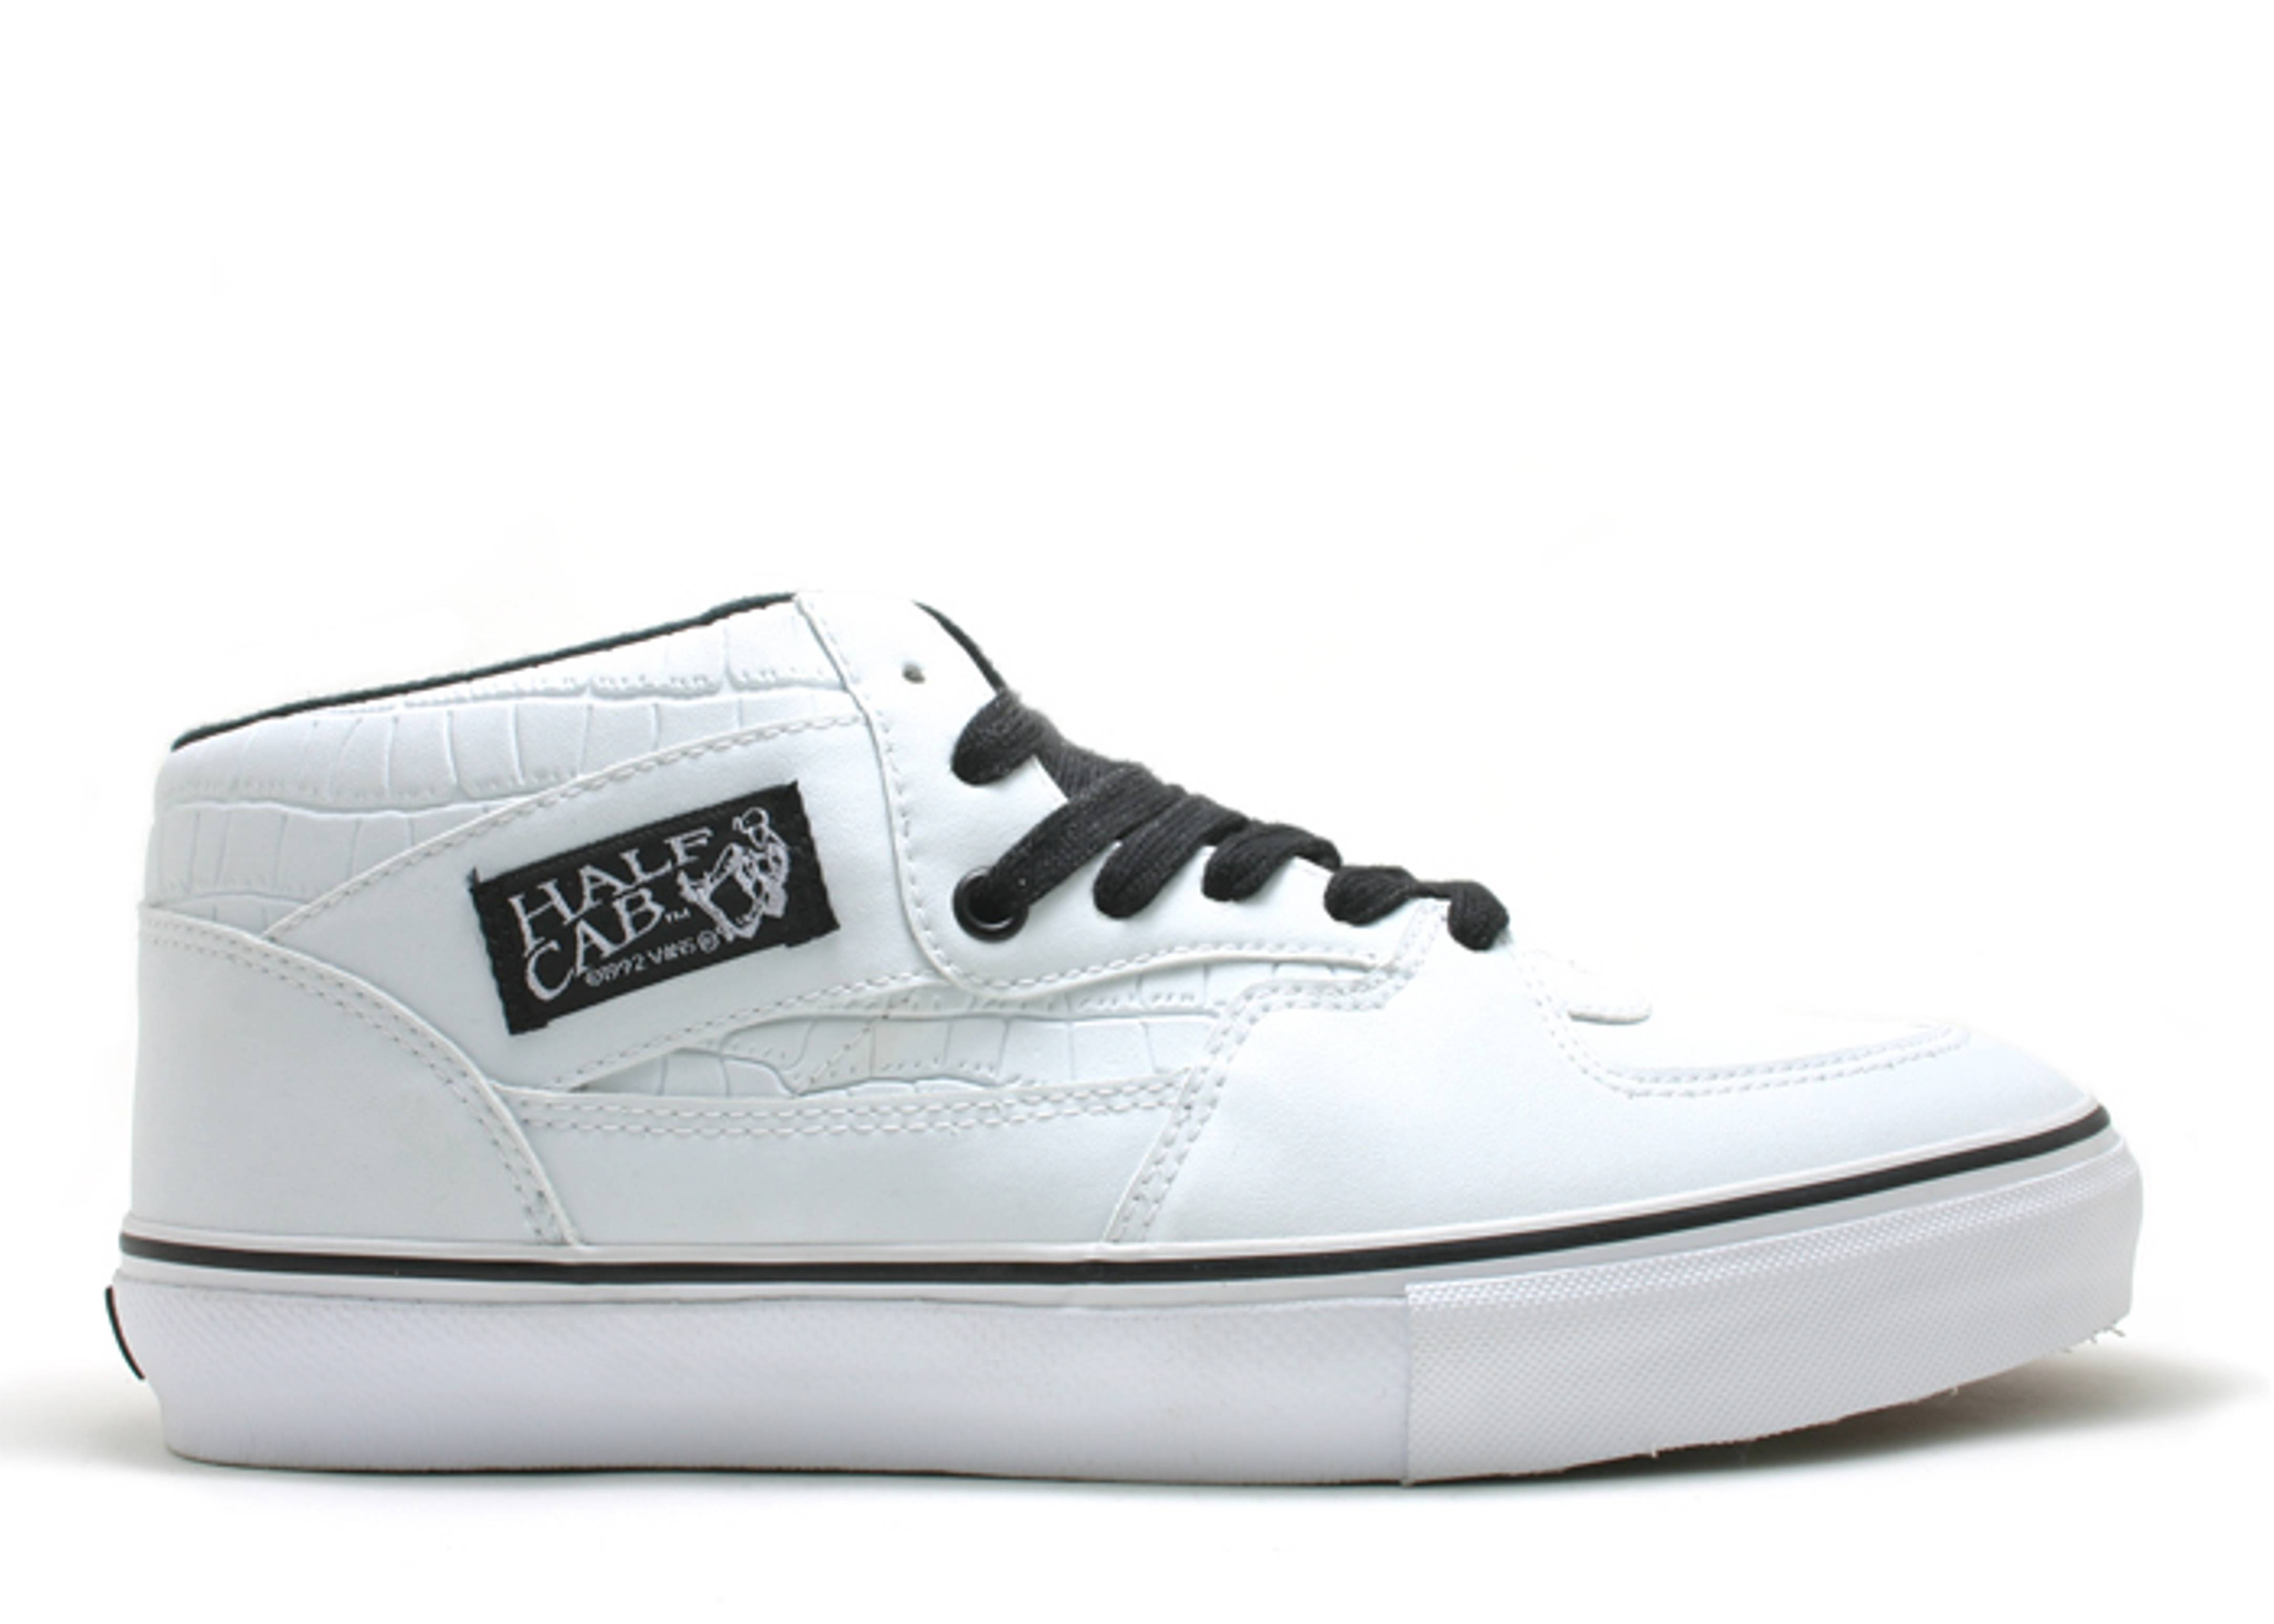 """half cab """"syndicate bullet proof"""""""""""